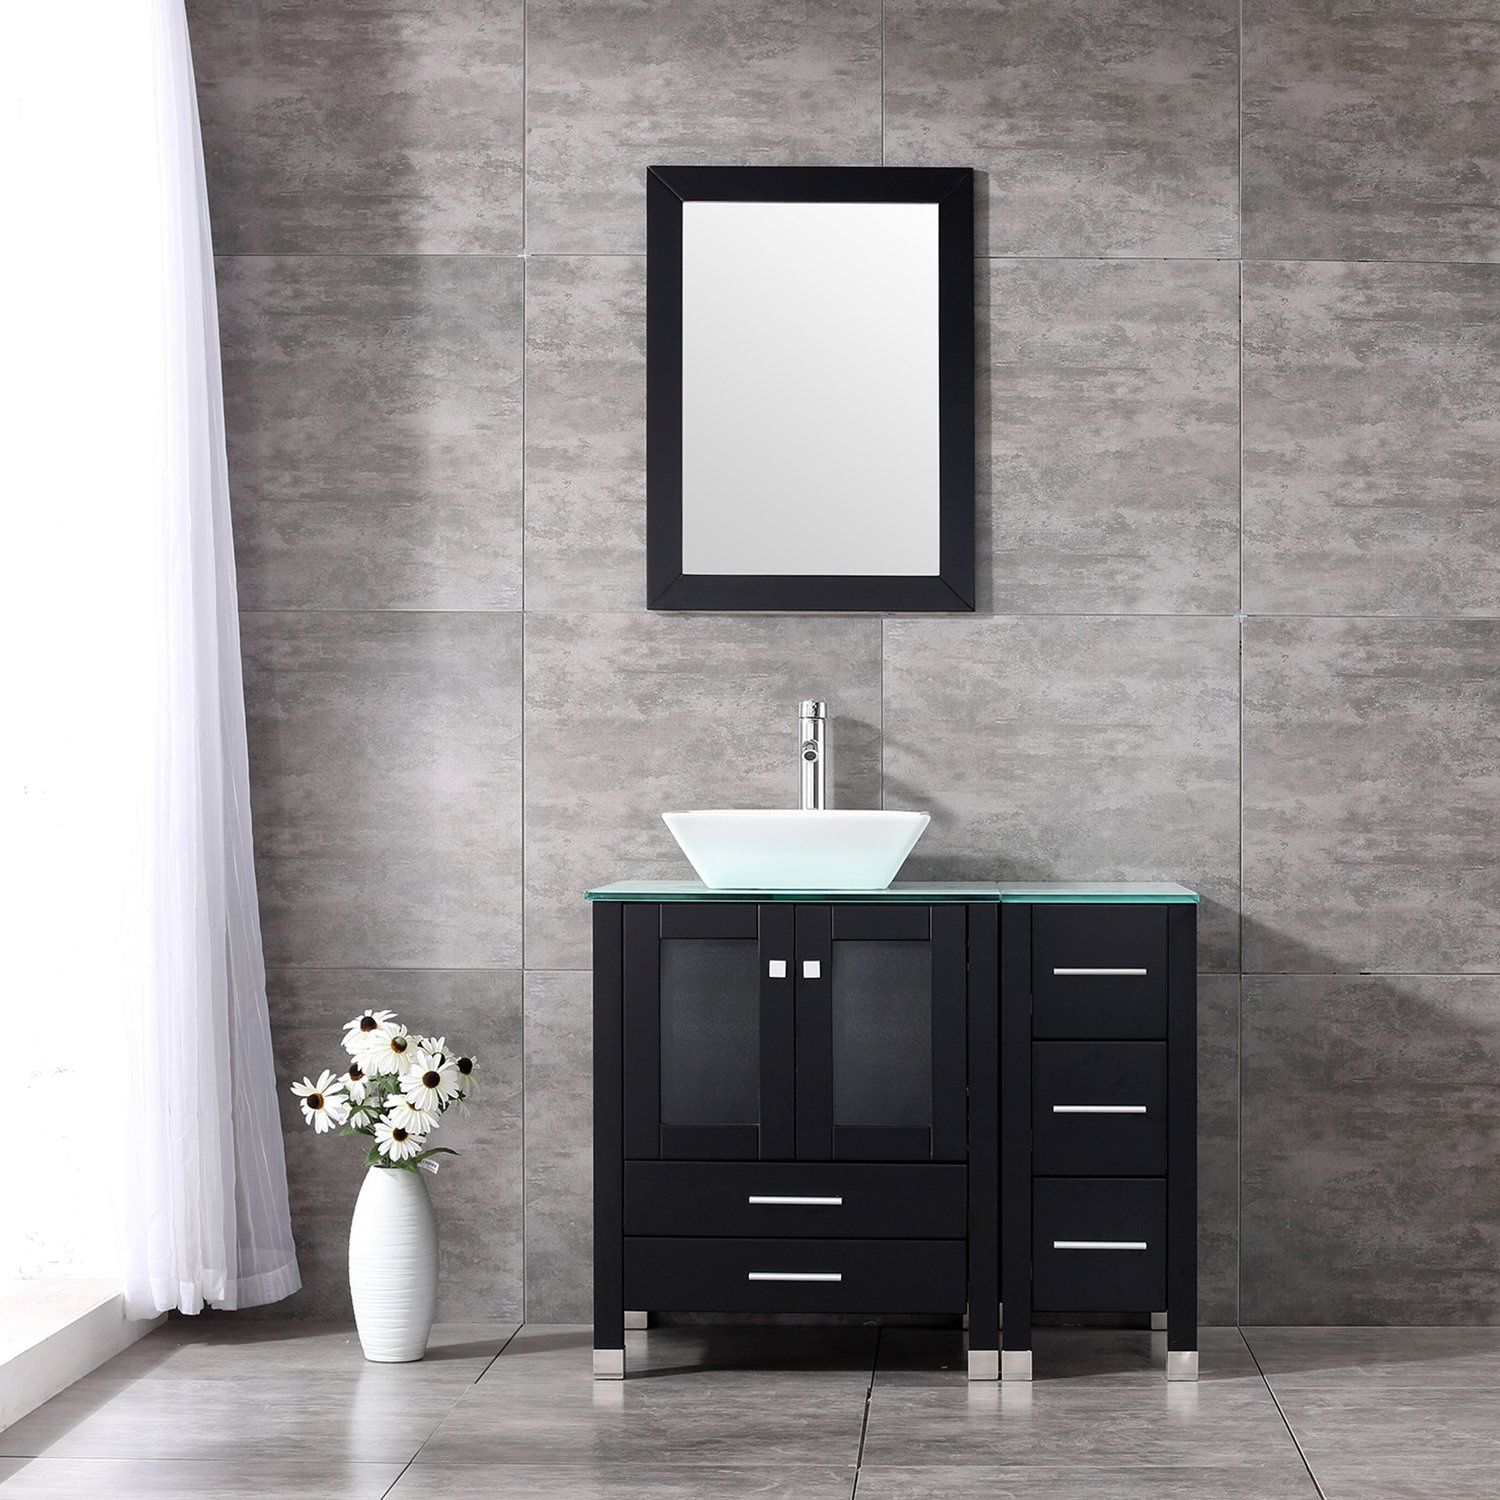 "BATHJOY 36"" Black Modern Wood Bathroom Vanity Cabinet White Square Ceramic Vessel Sink Top Free Faucet Drain Combo with Mirror by BATHJOY"